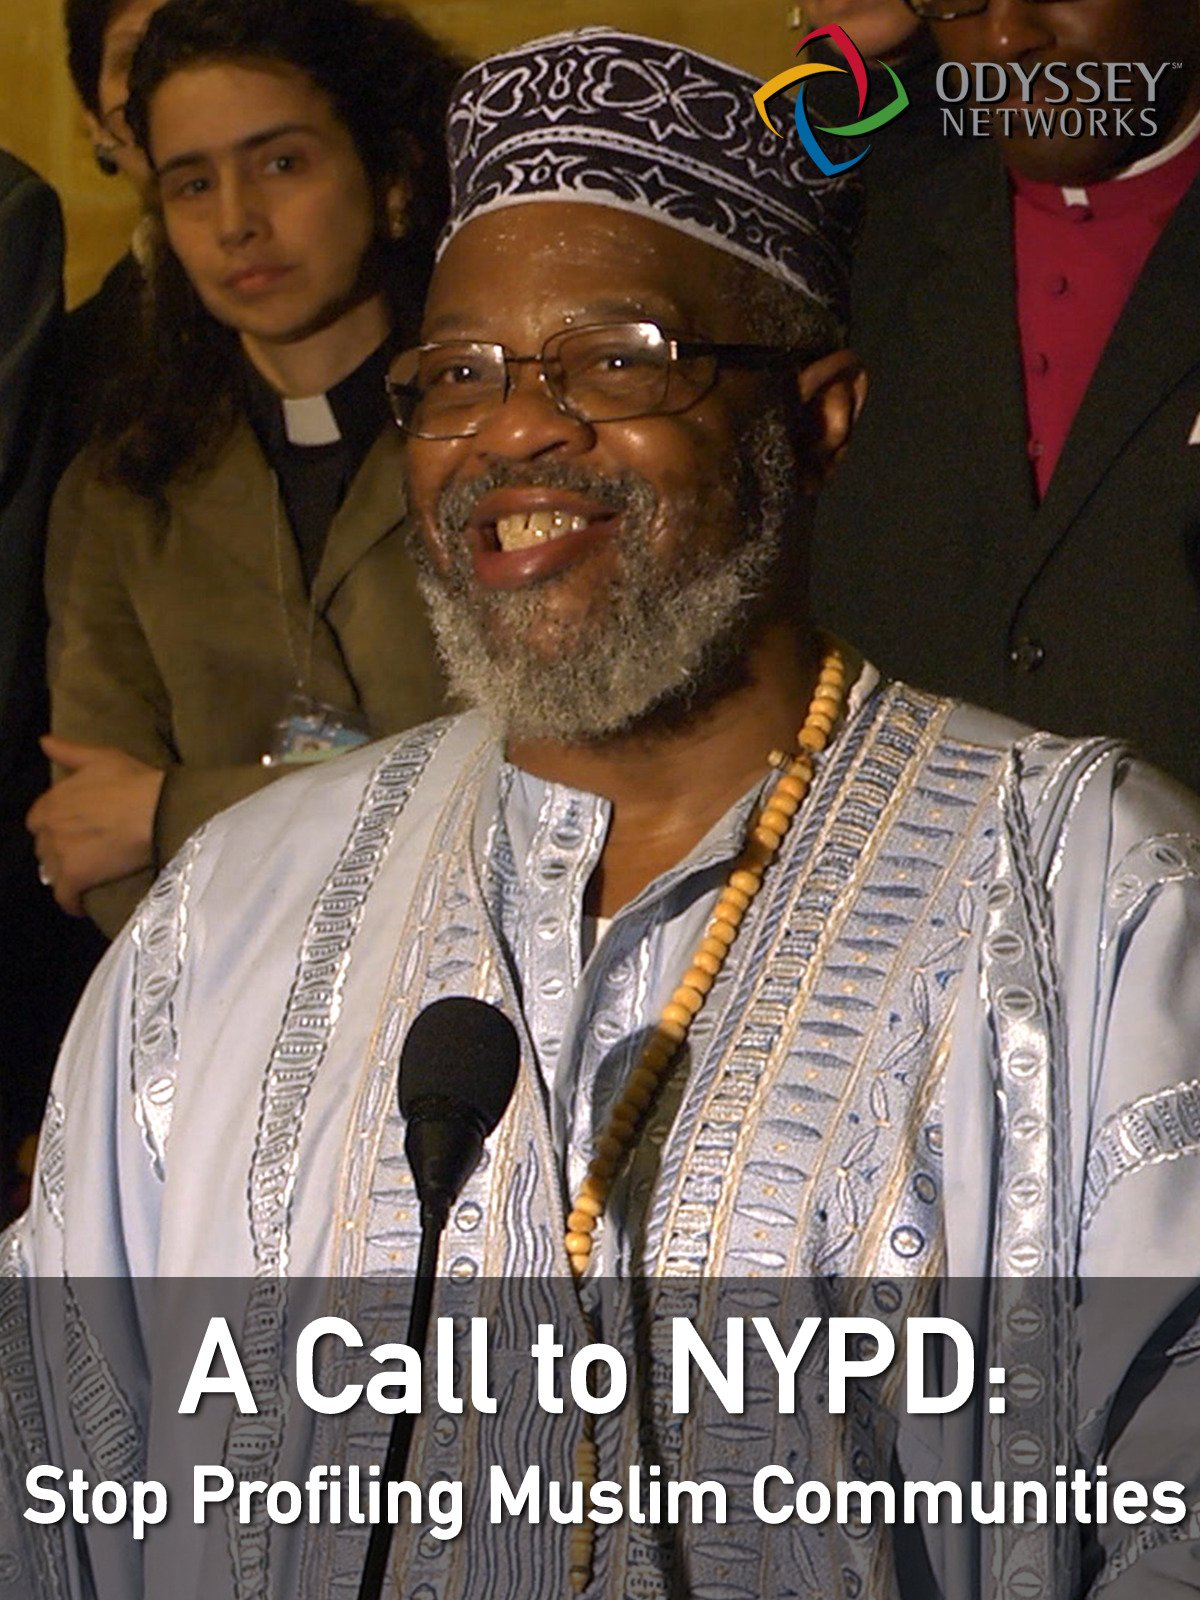 Clip: A Call to NYPD: Stop Profiling Muslim Communities